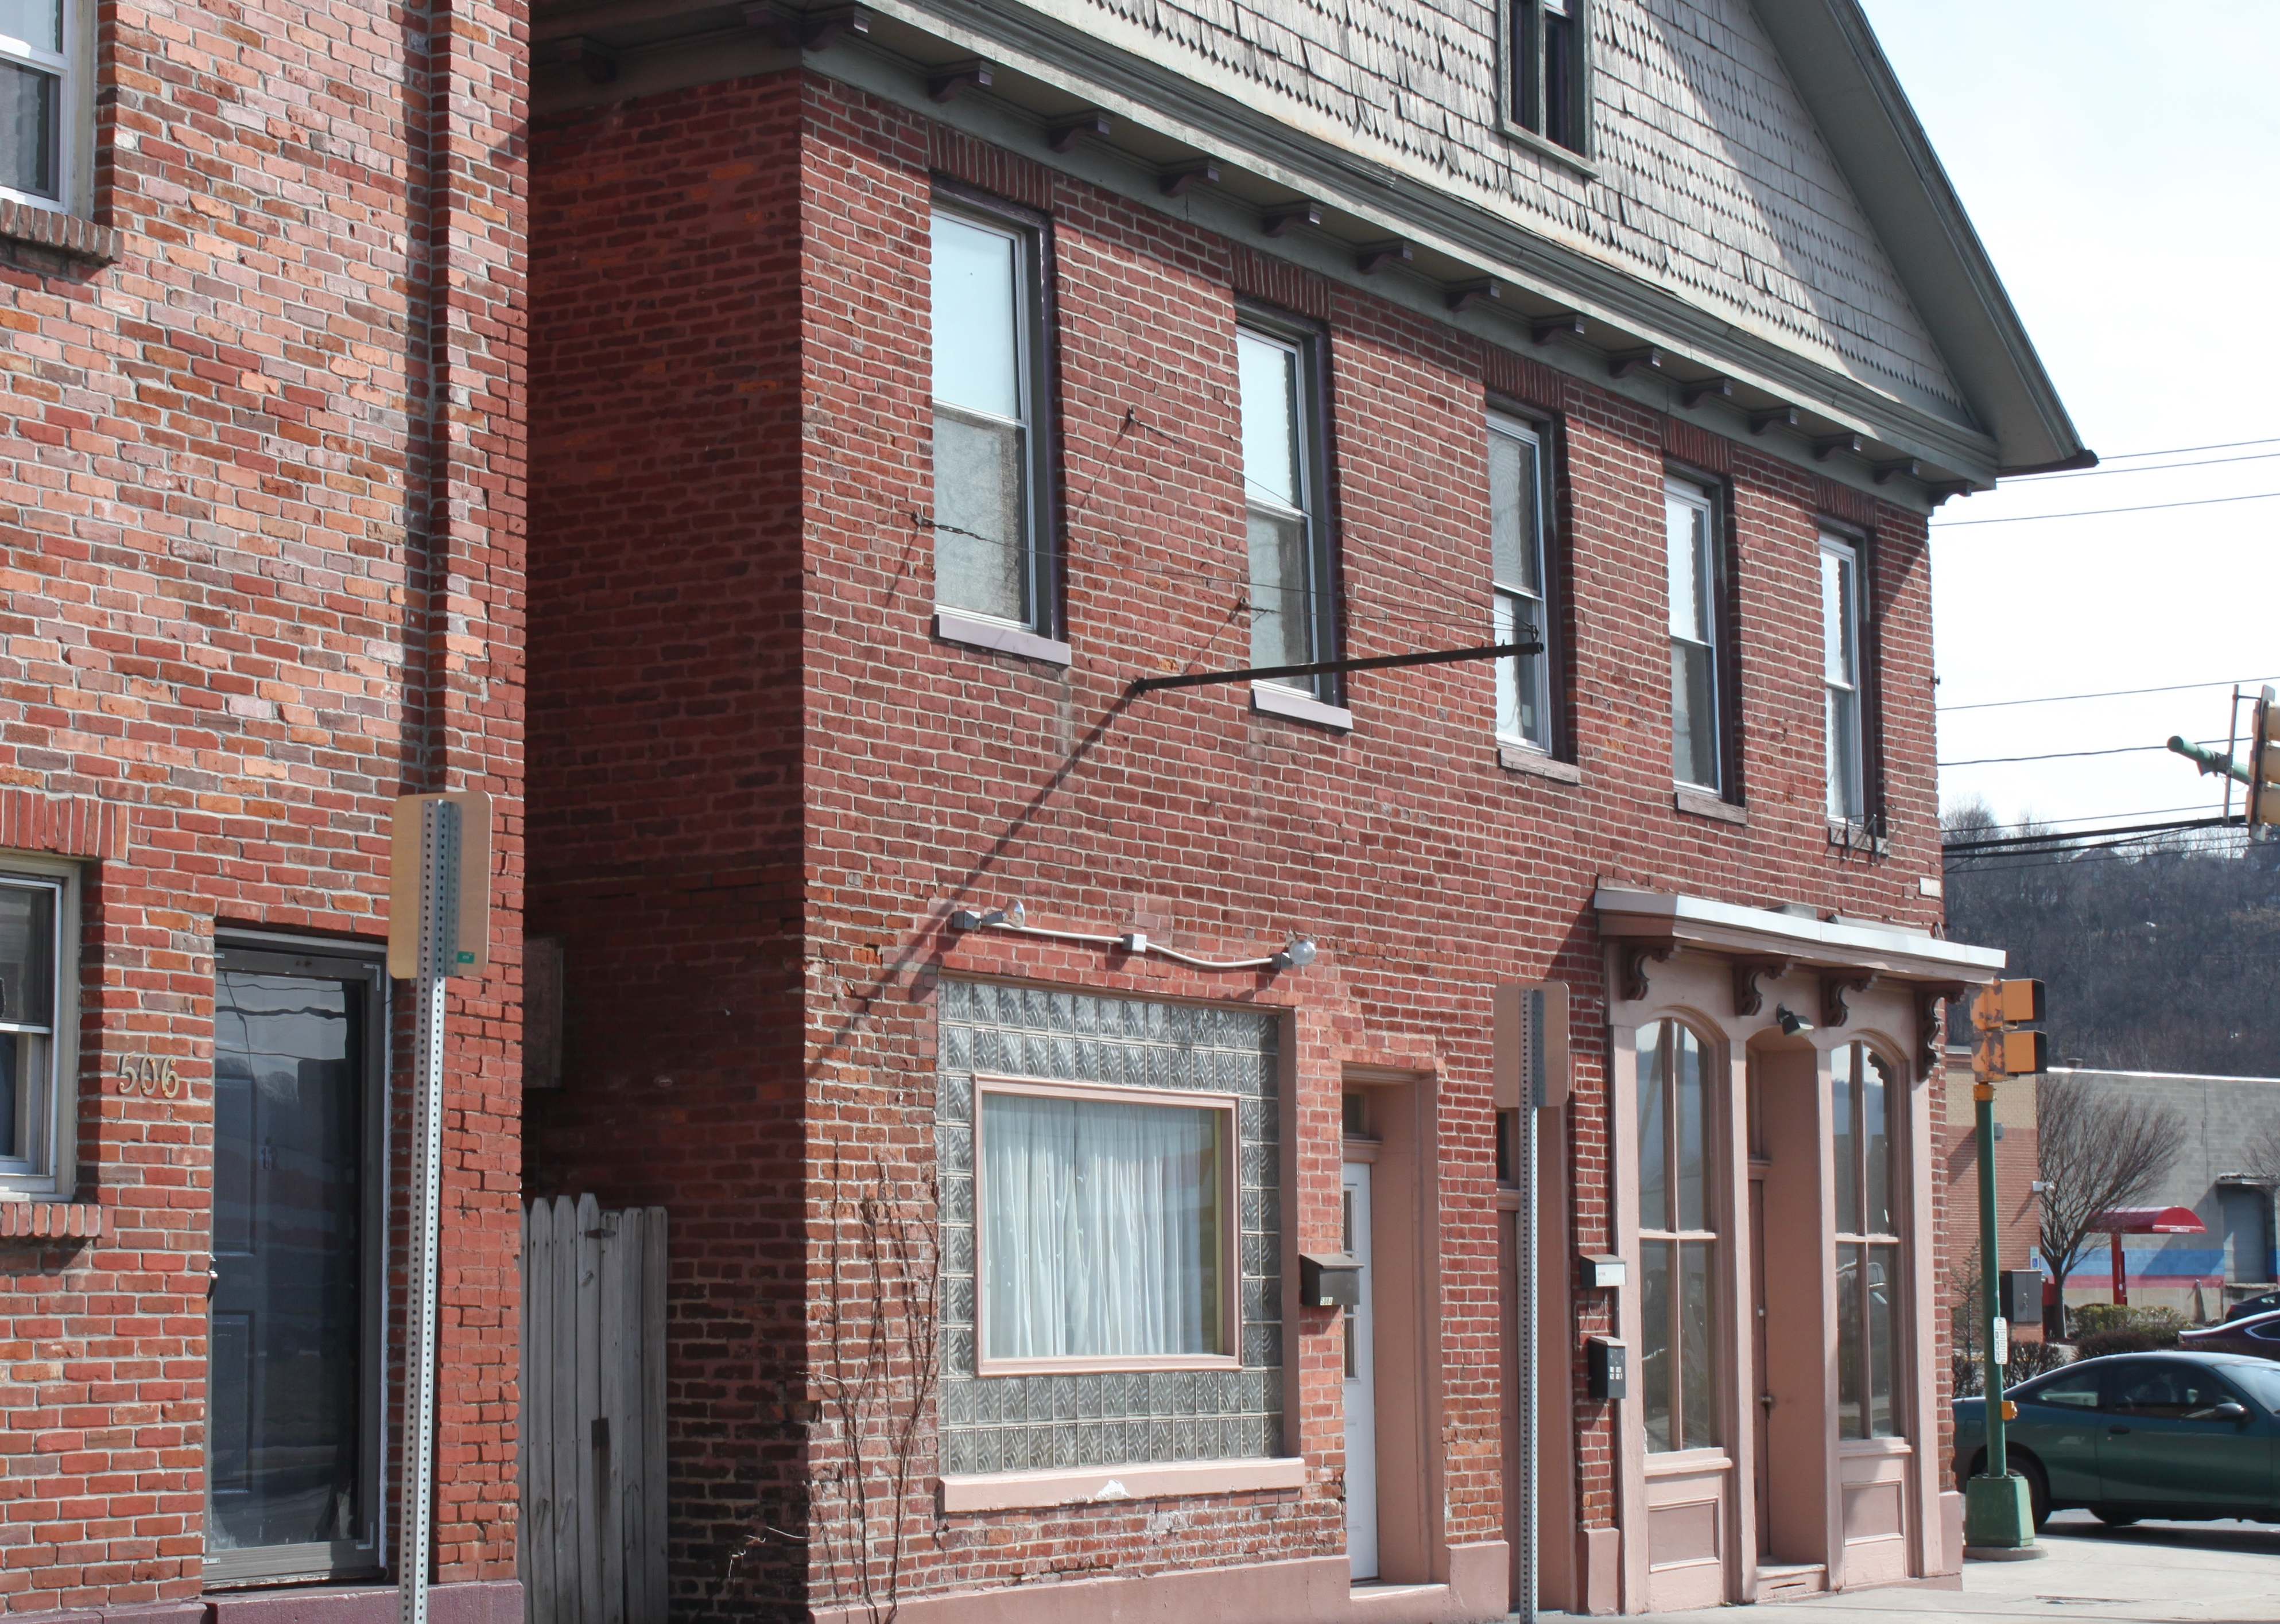 Malamphy's Saloon and Bottling Works, Rolling Mill Neighborhood